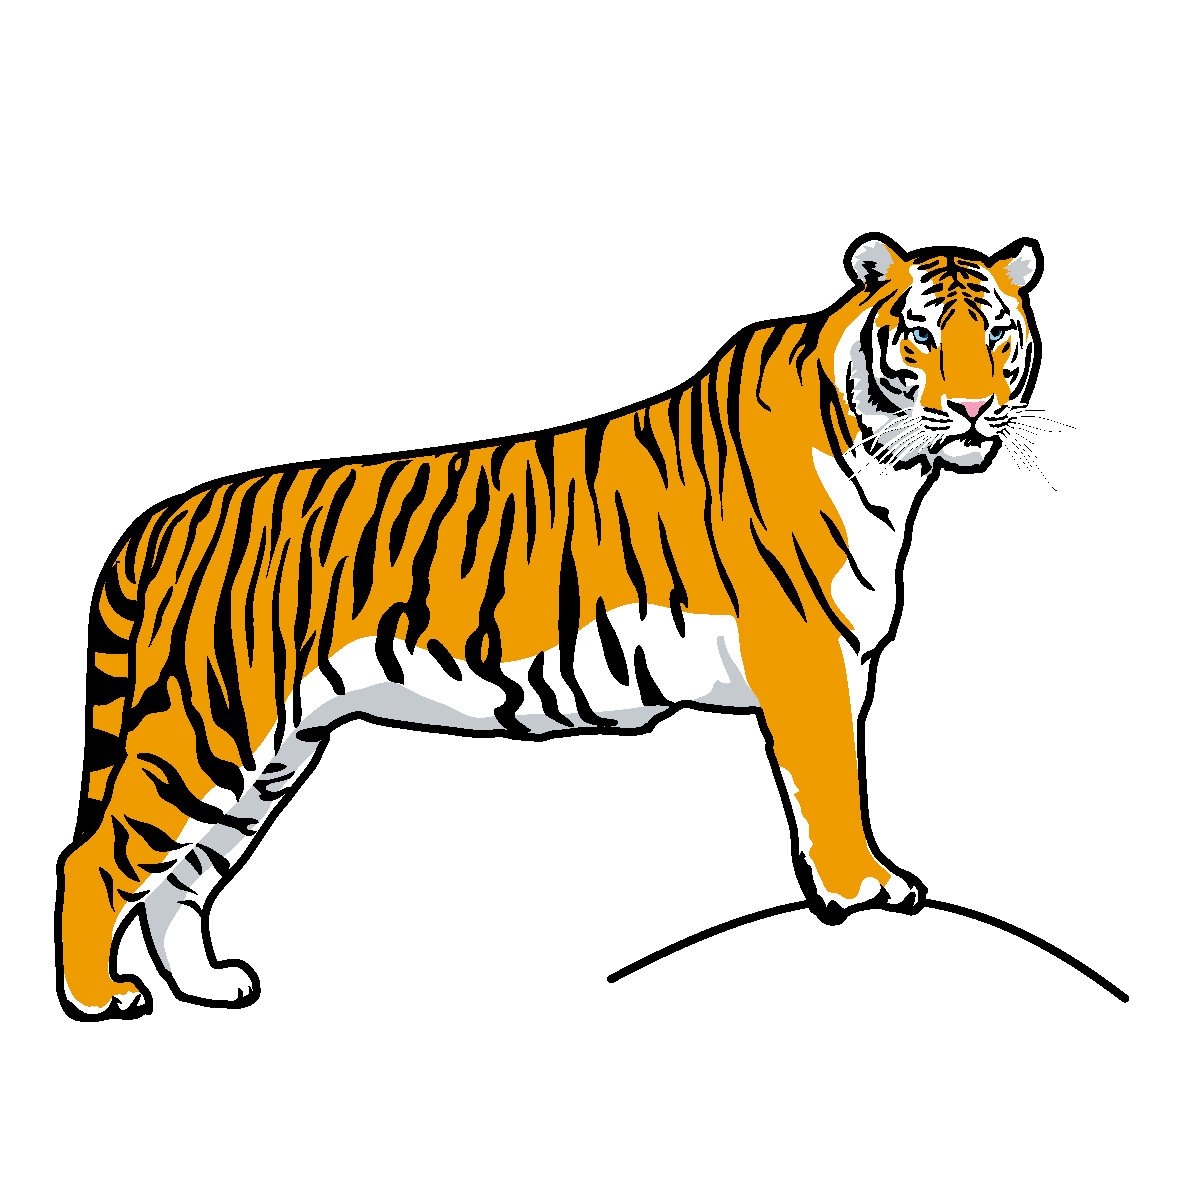 Running Tiger Clipart Black And White-running tiger clipart black and white-12